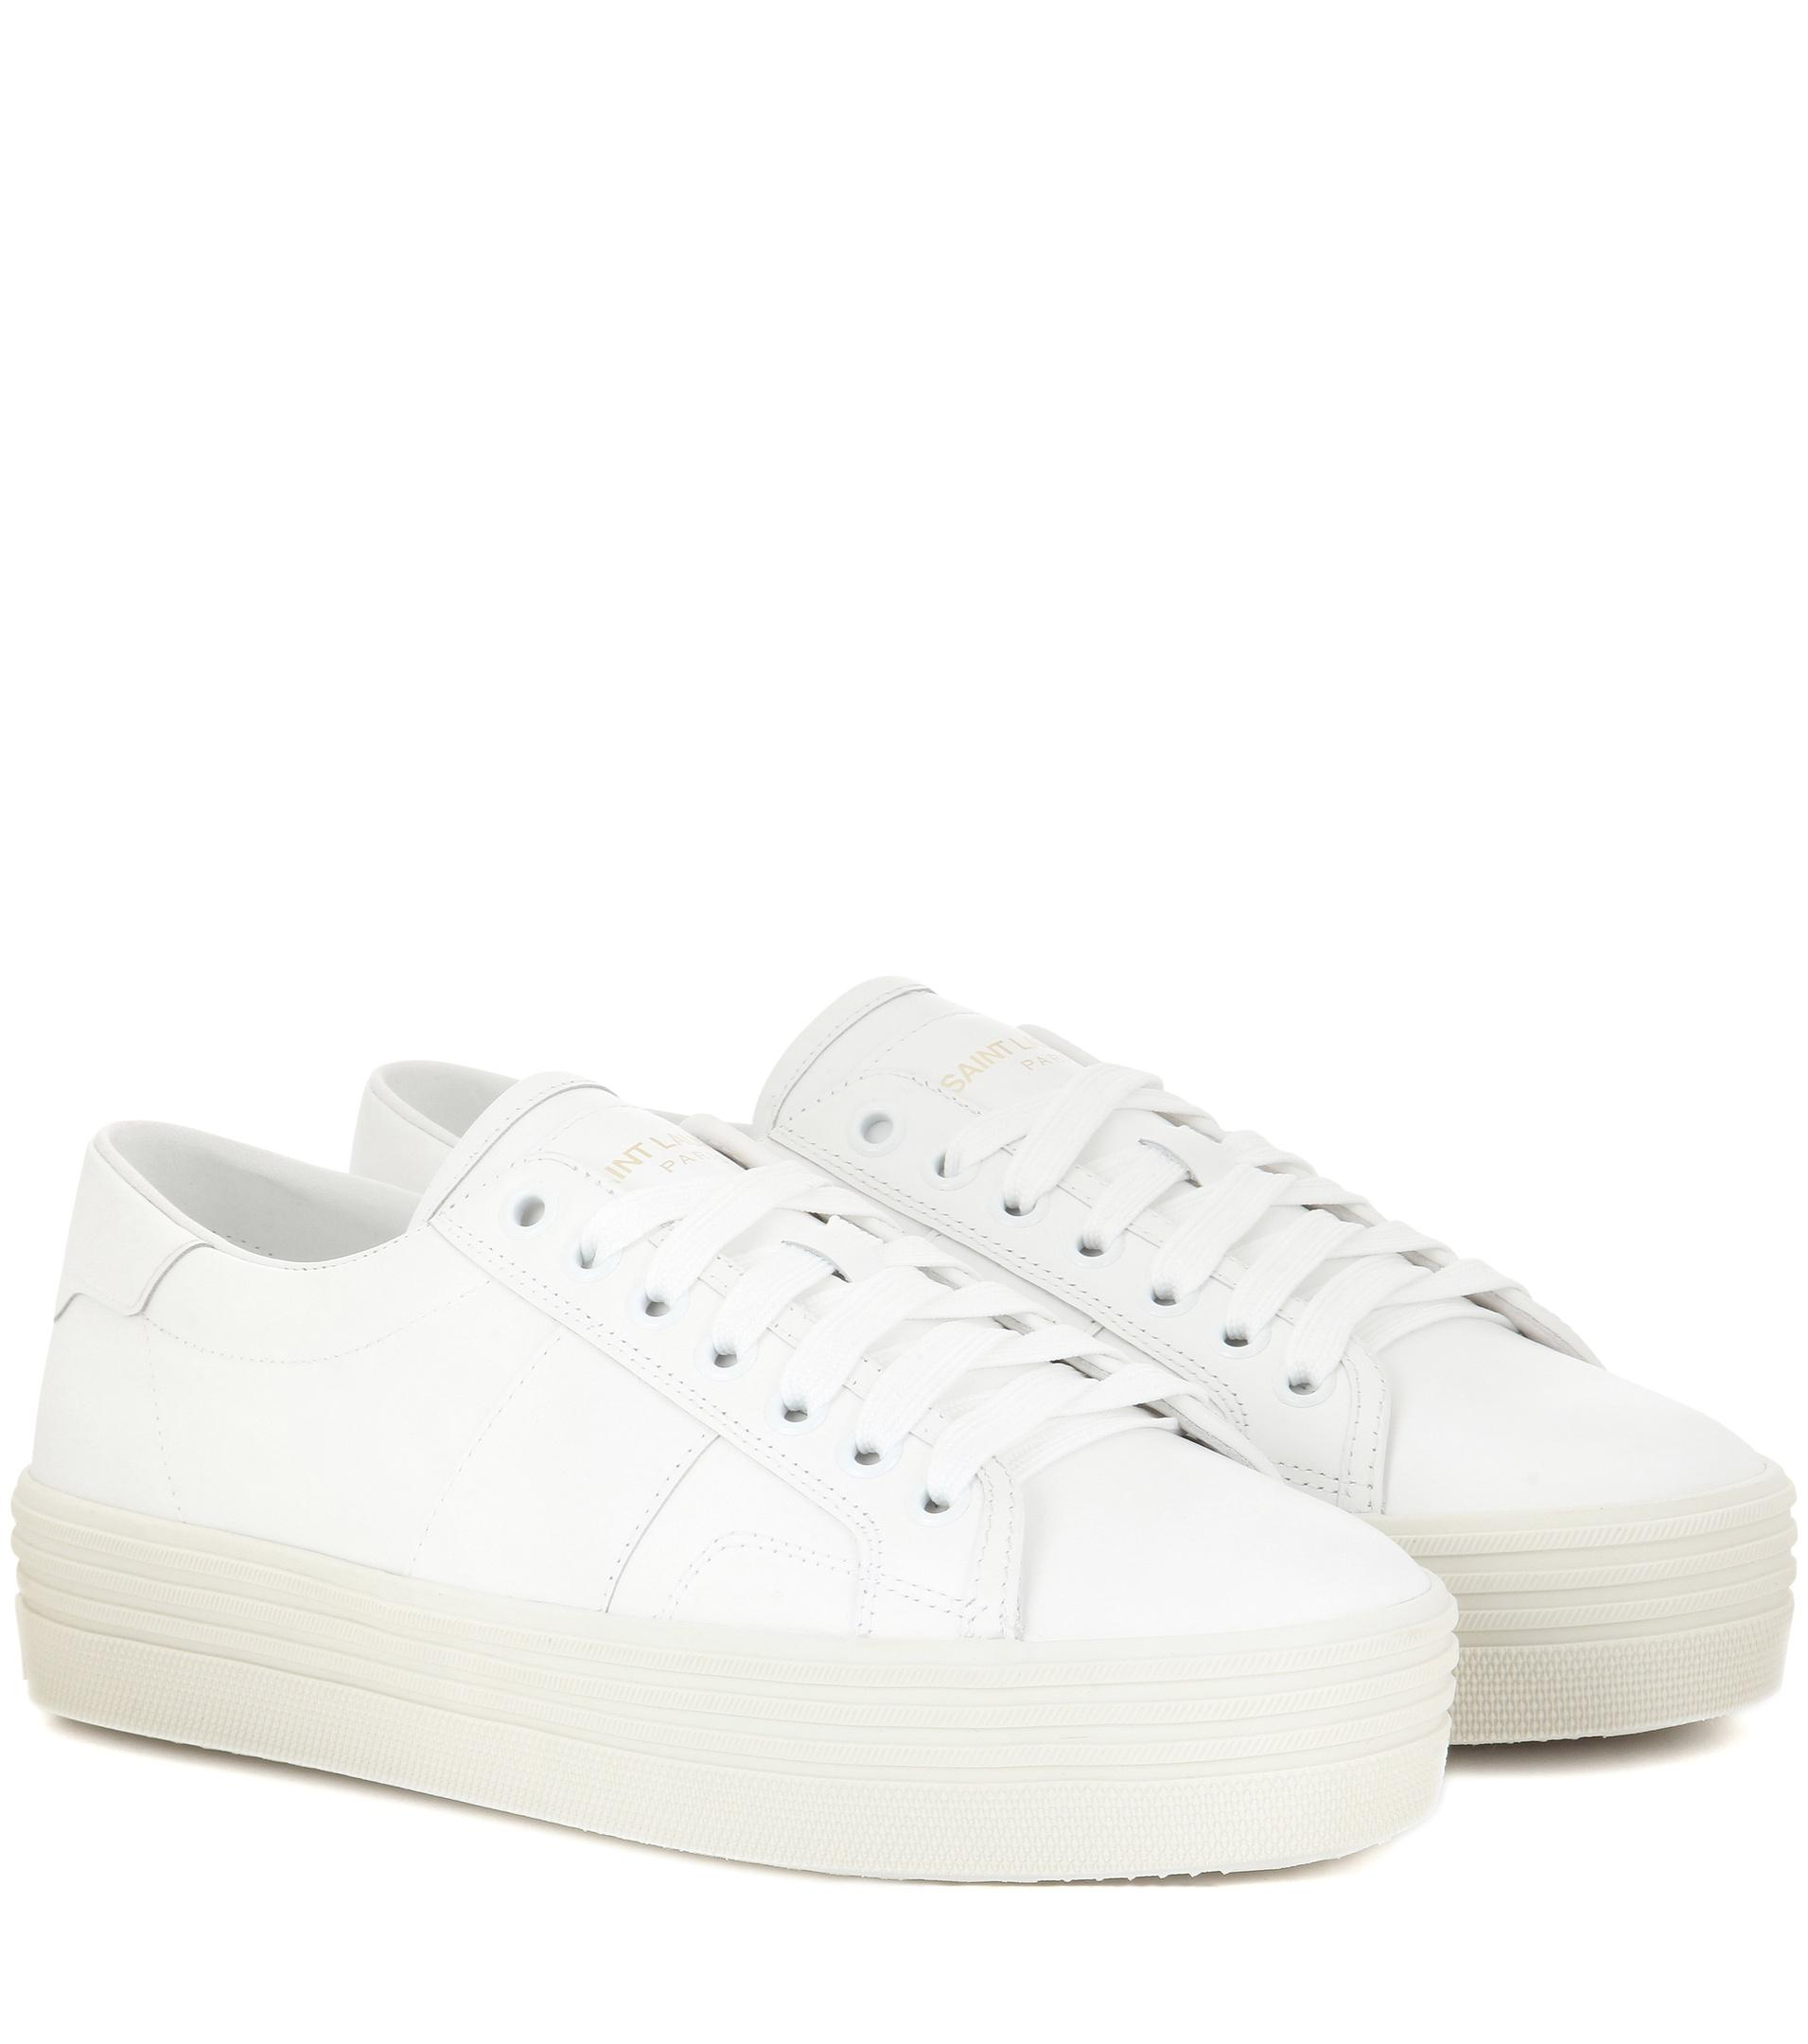 Outlet Top Quality Free Shipping Explore Signature Court sneakers - White Saint Laurent How Much Cheap Online Clearance Perfect Popular Cheap Online CNY9WAo